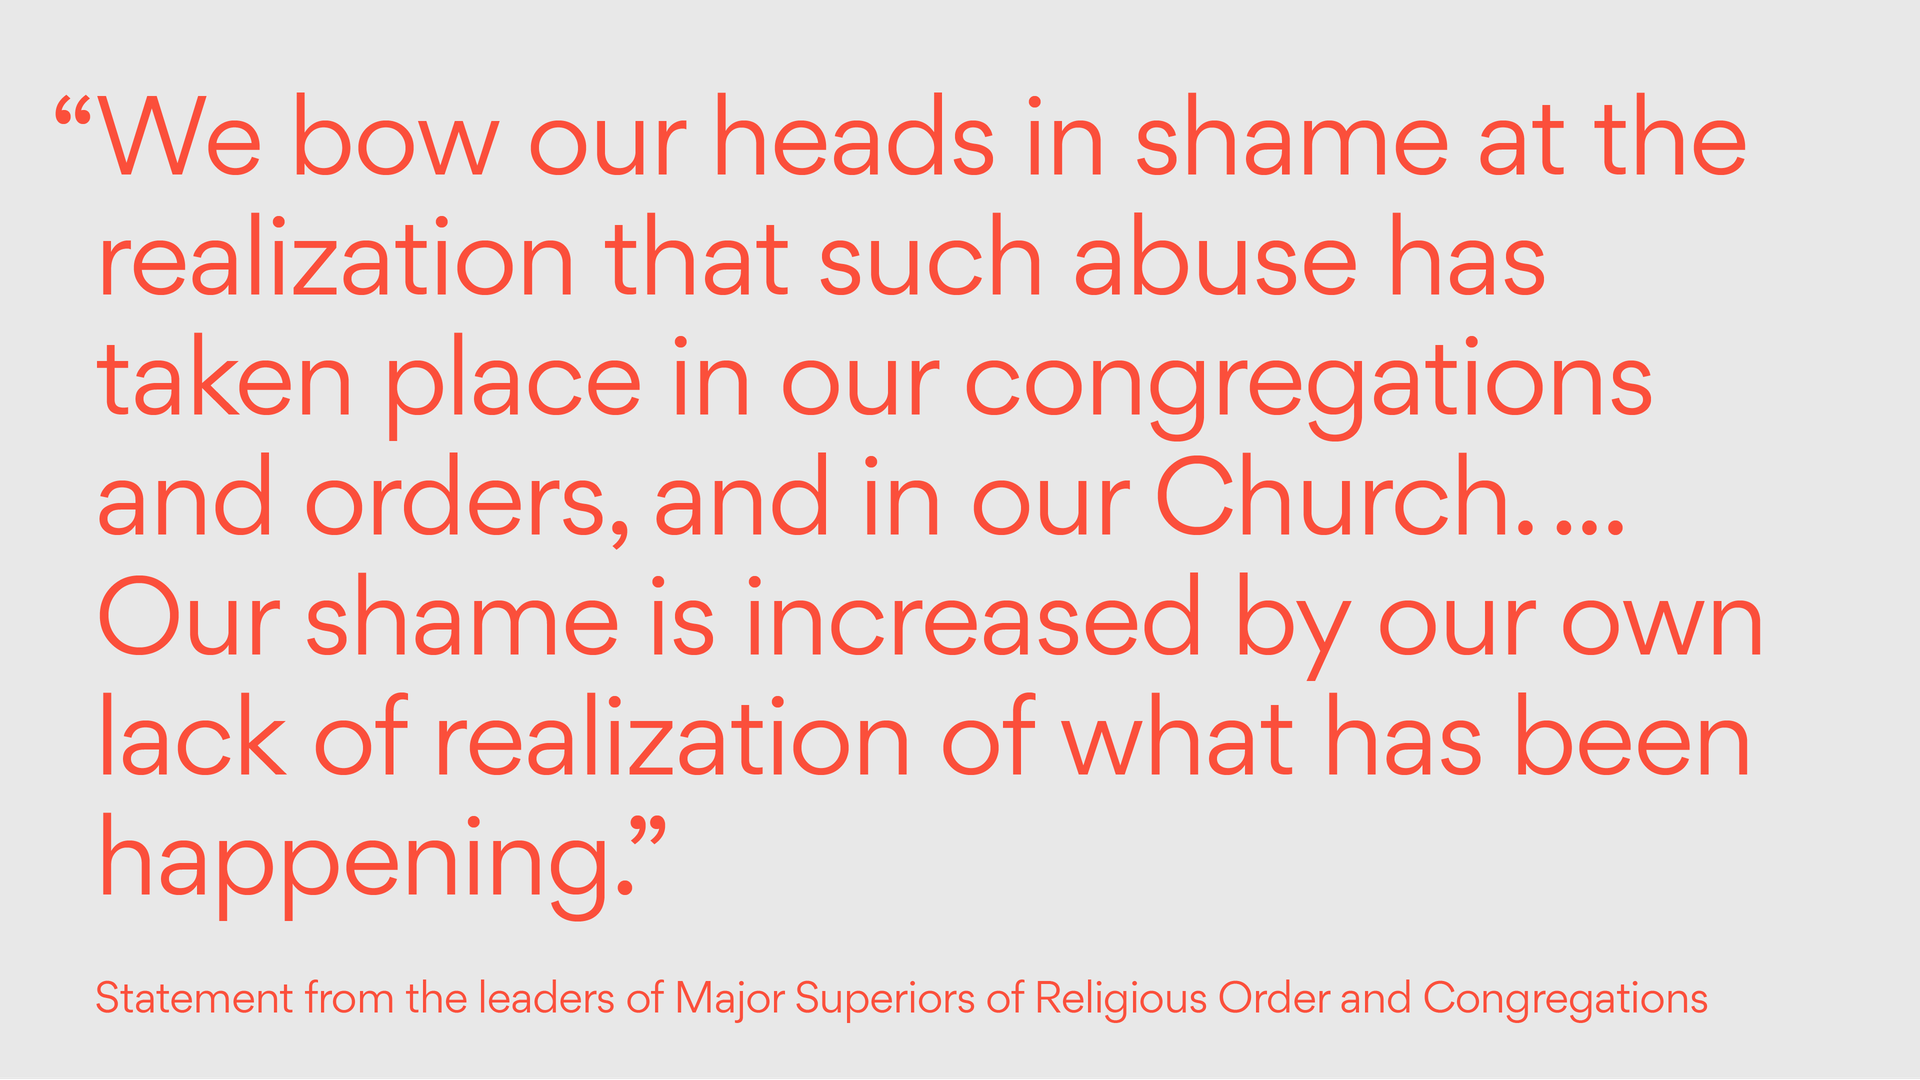 Statement from the leaders of Major Superiors of Religious Order and Congregations